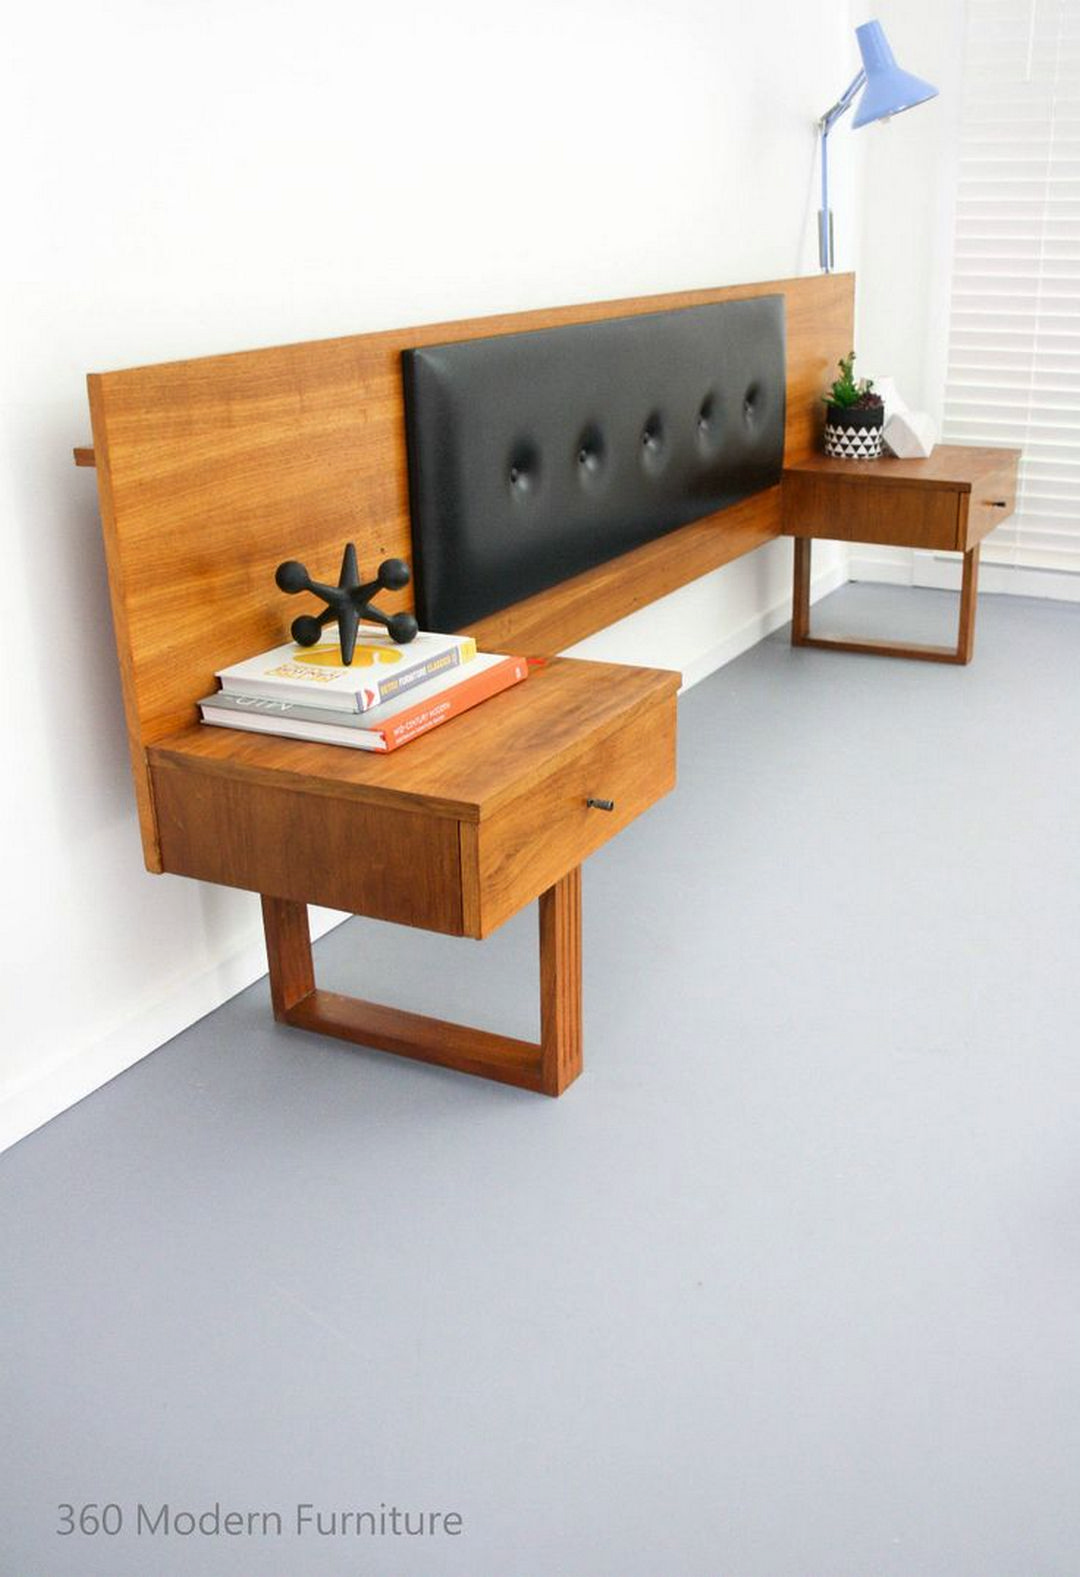 Furniture For The National Audiovisual Institute Nina A Furniture Project With Dominant And Neutral Colors Mid Century Modern Bedroom Sets Modern Bedroom Furniture Retro Home Decor